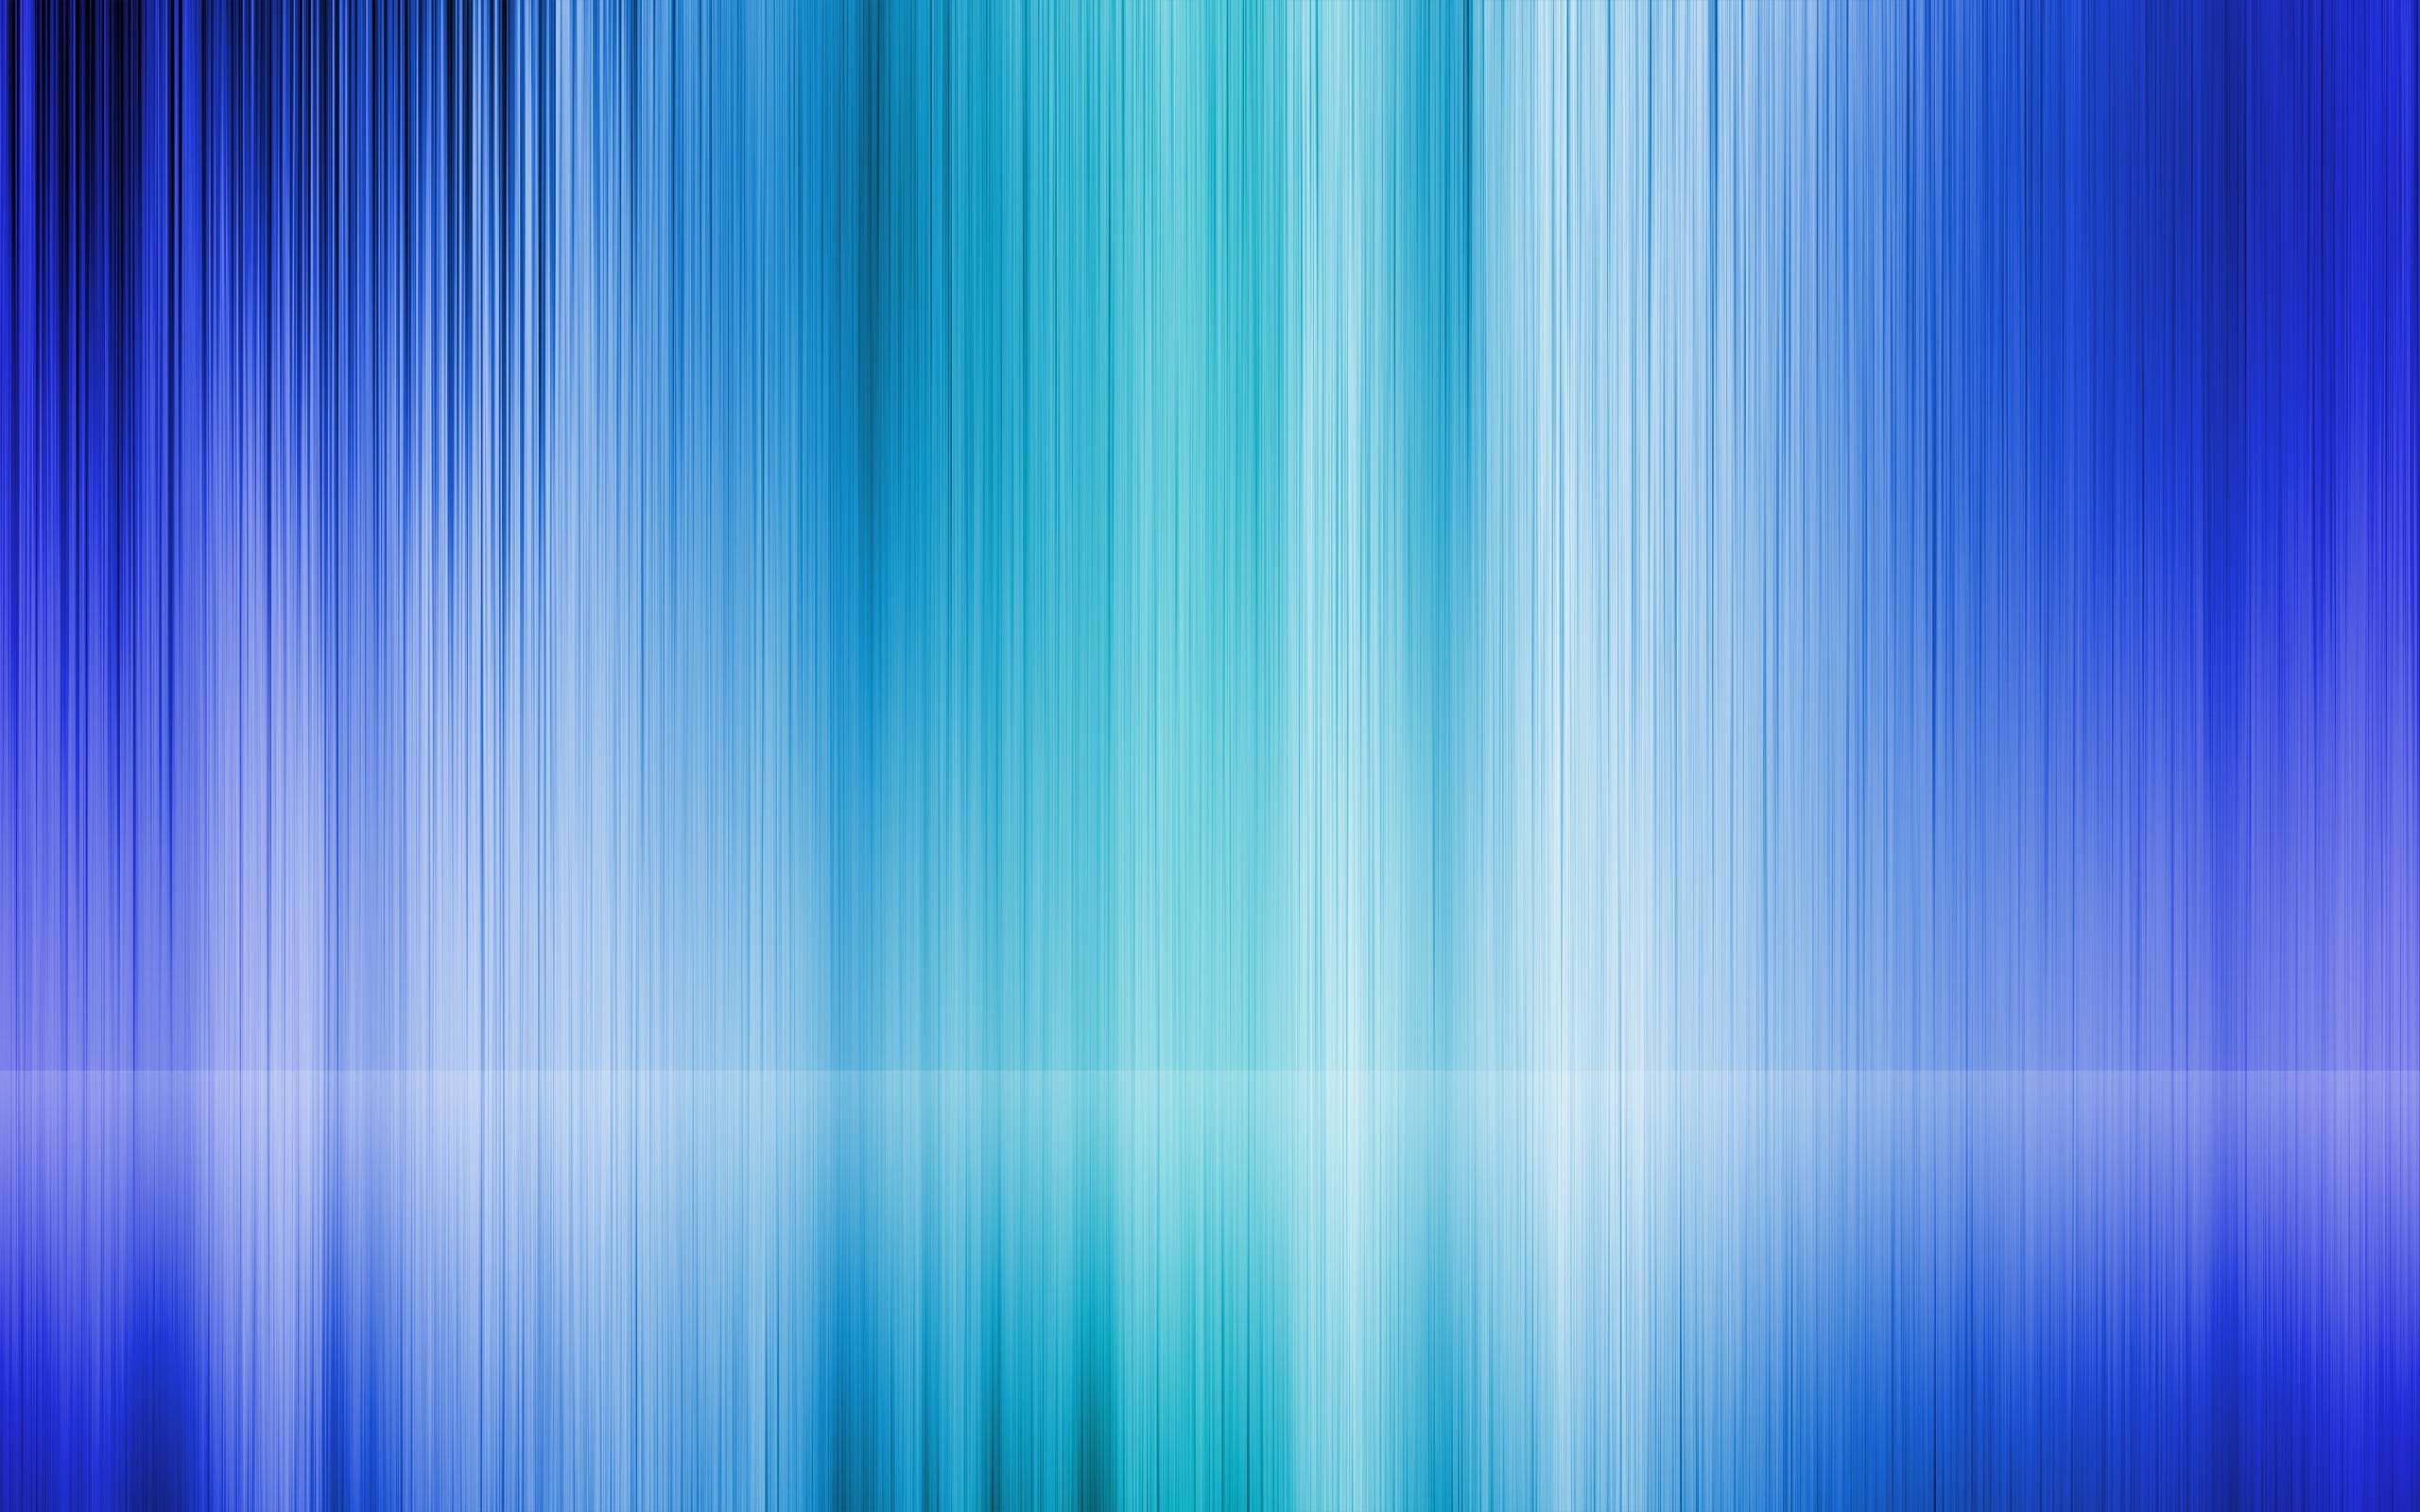 light blue iphone wallpaper - photo #34